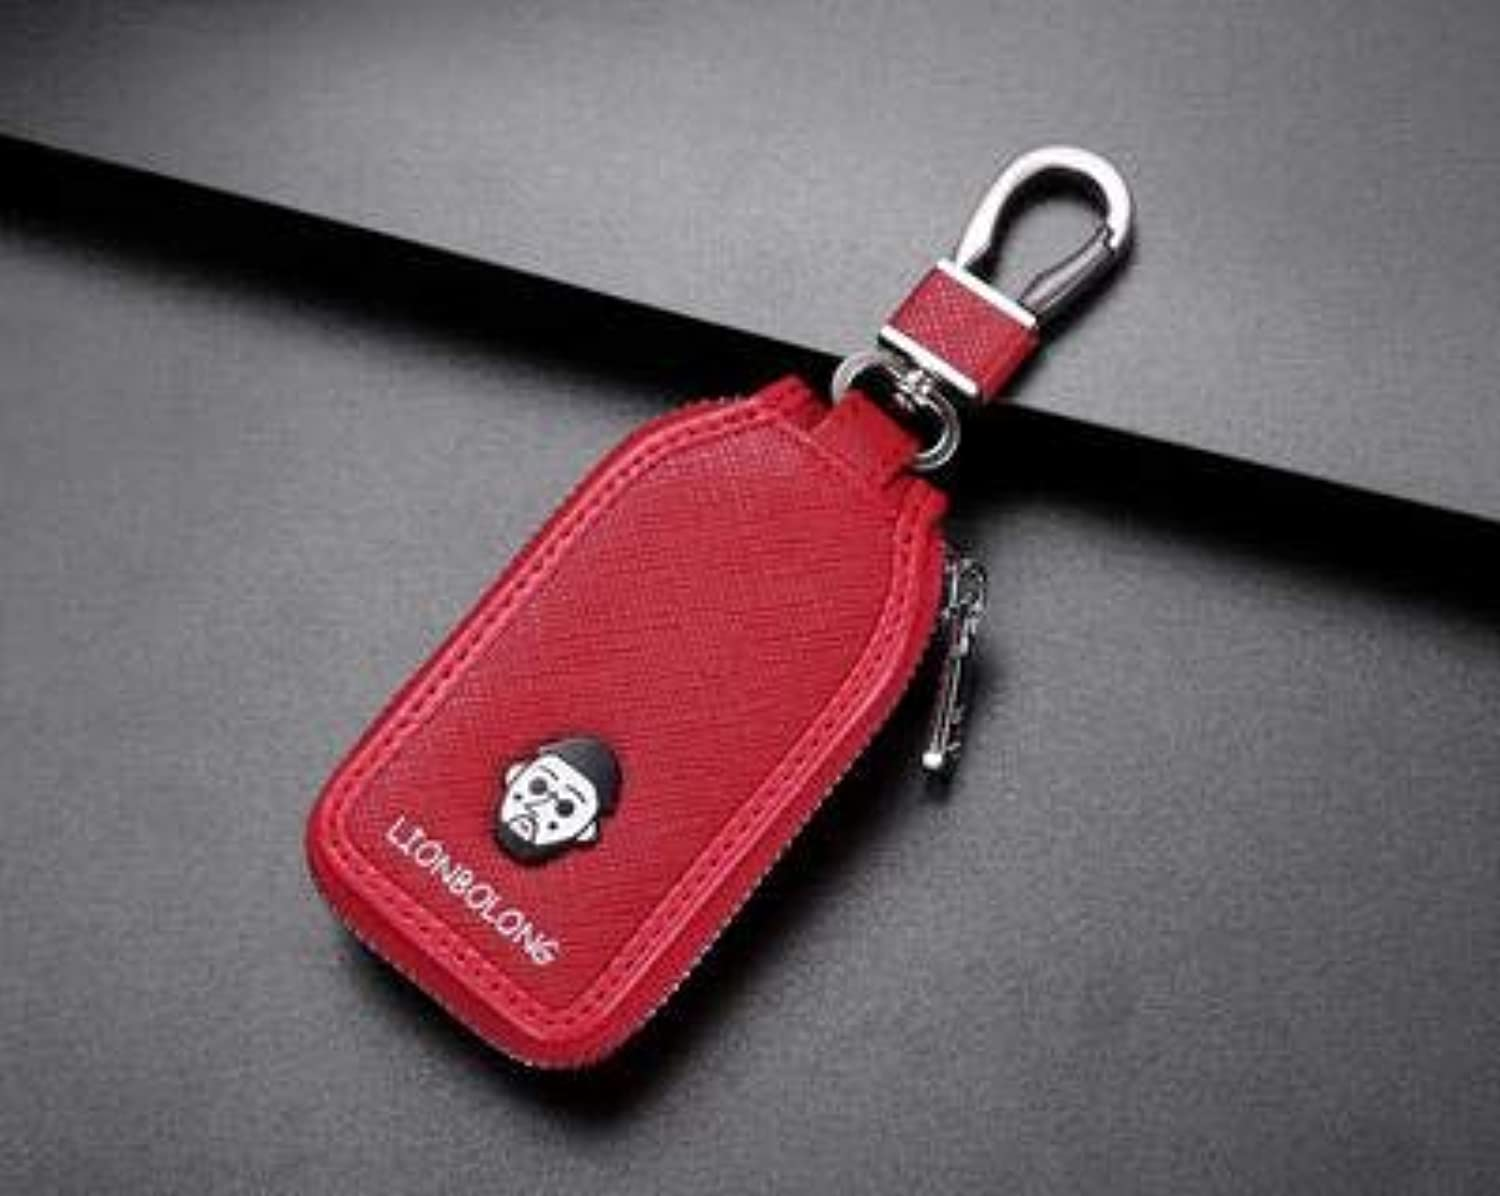 New Skylight Car Key Ring Red color Key case for Ford Acura Infiniti Nissan Audi BMW Buick Cadillac Lexus Chevrolet Citroen Key